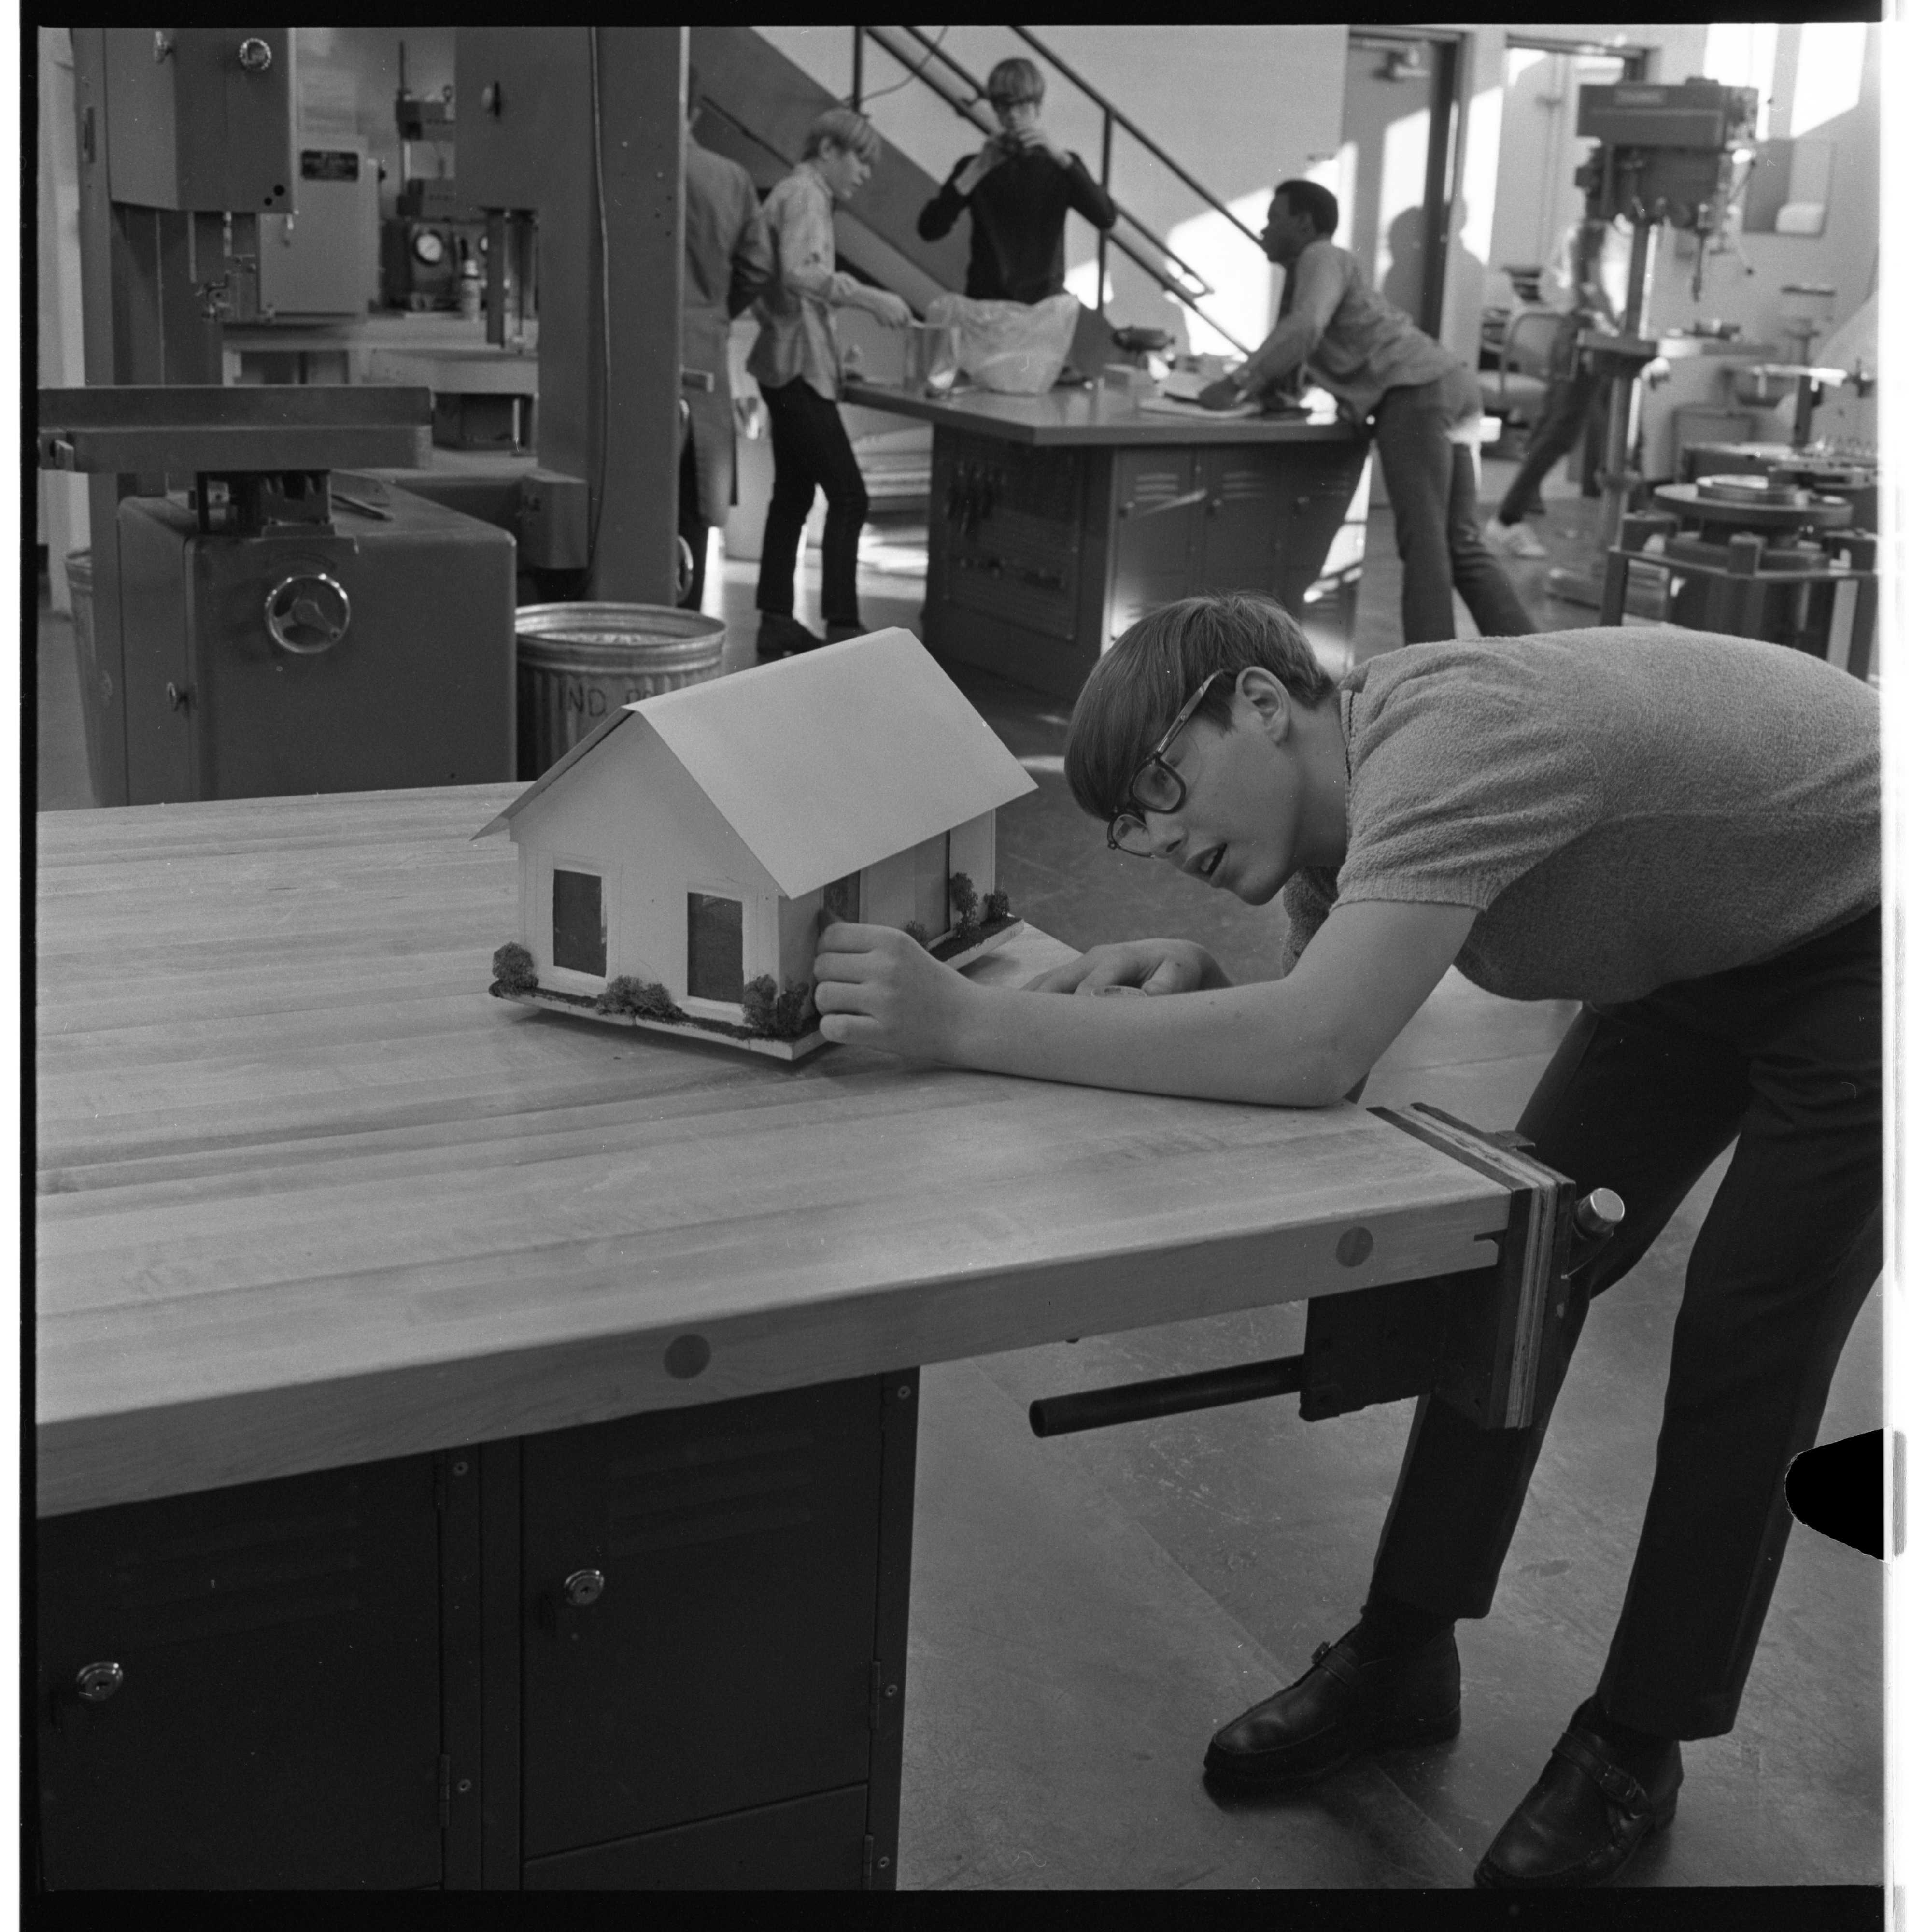 Bill Brushaber Examines The Model He Made In Huron High School's Industrial Processes Class, January 1970 image